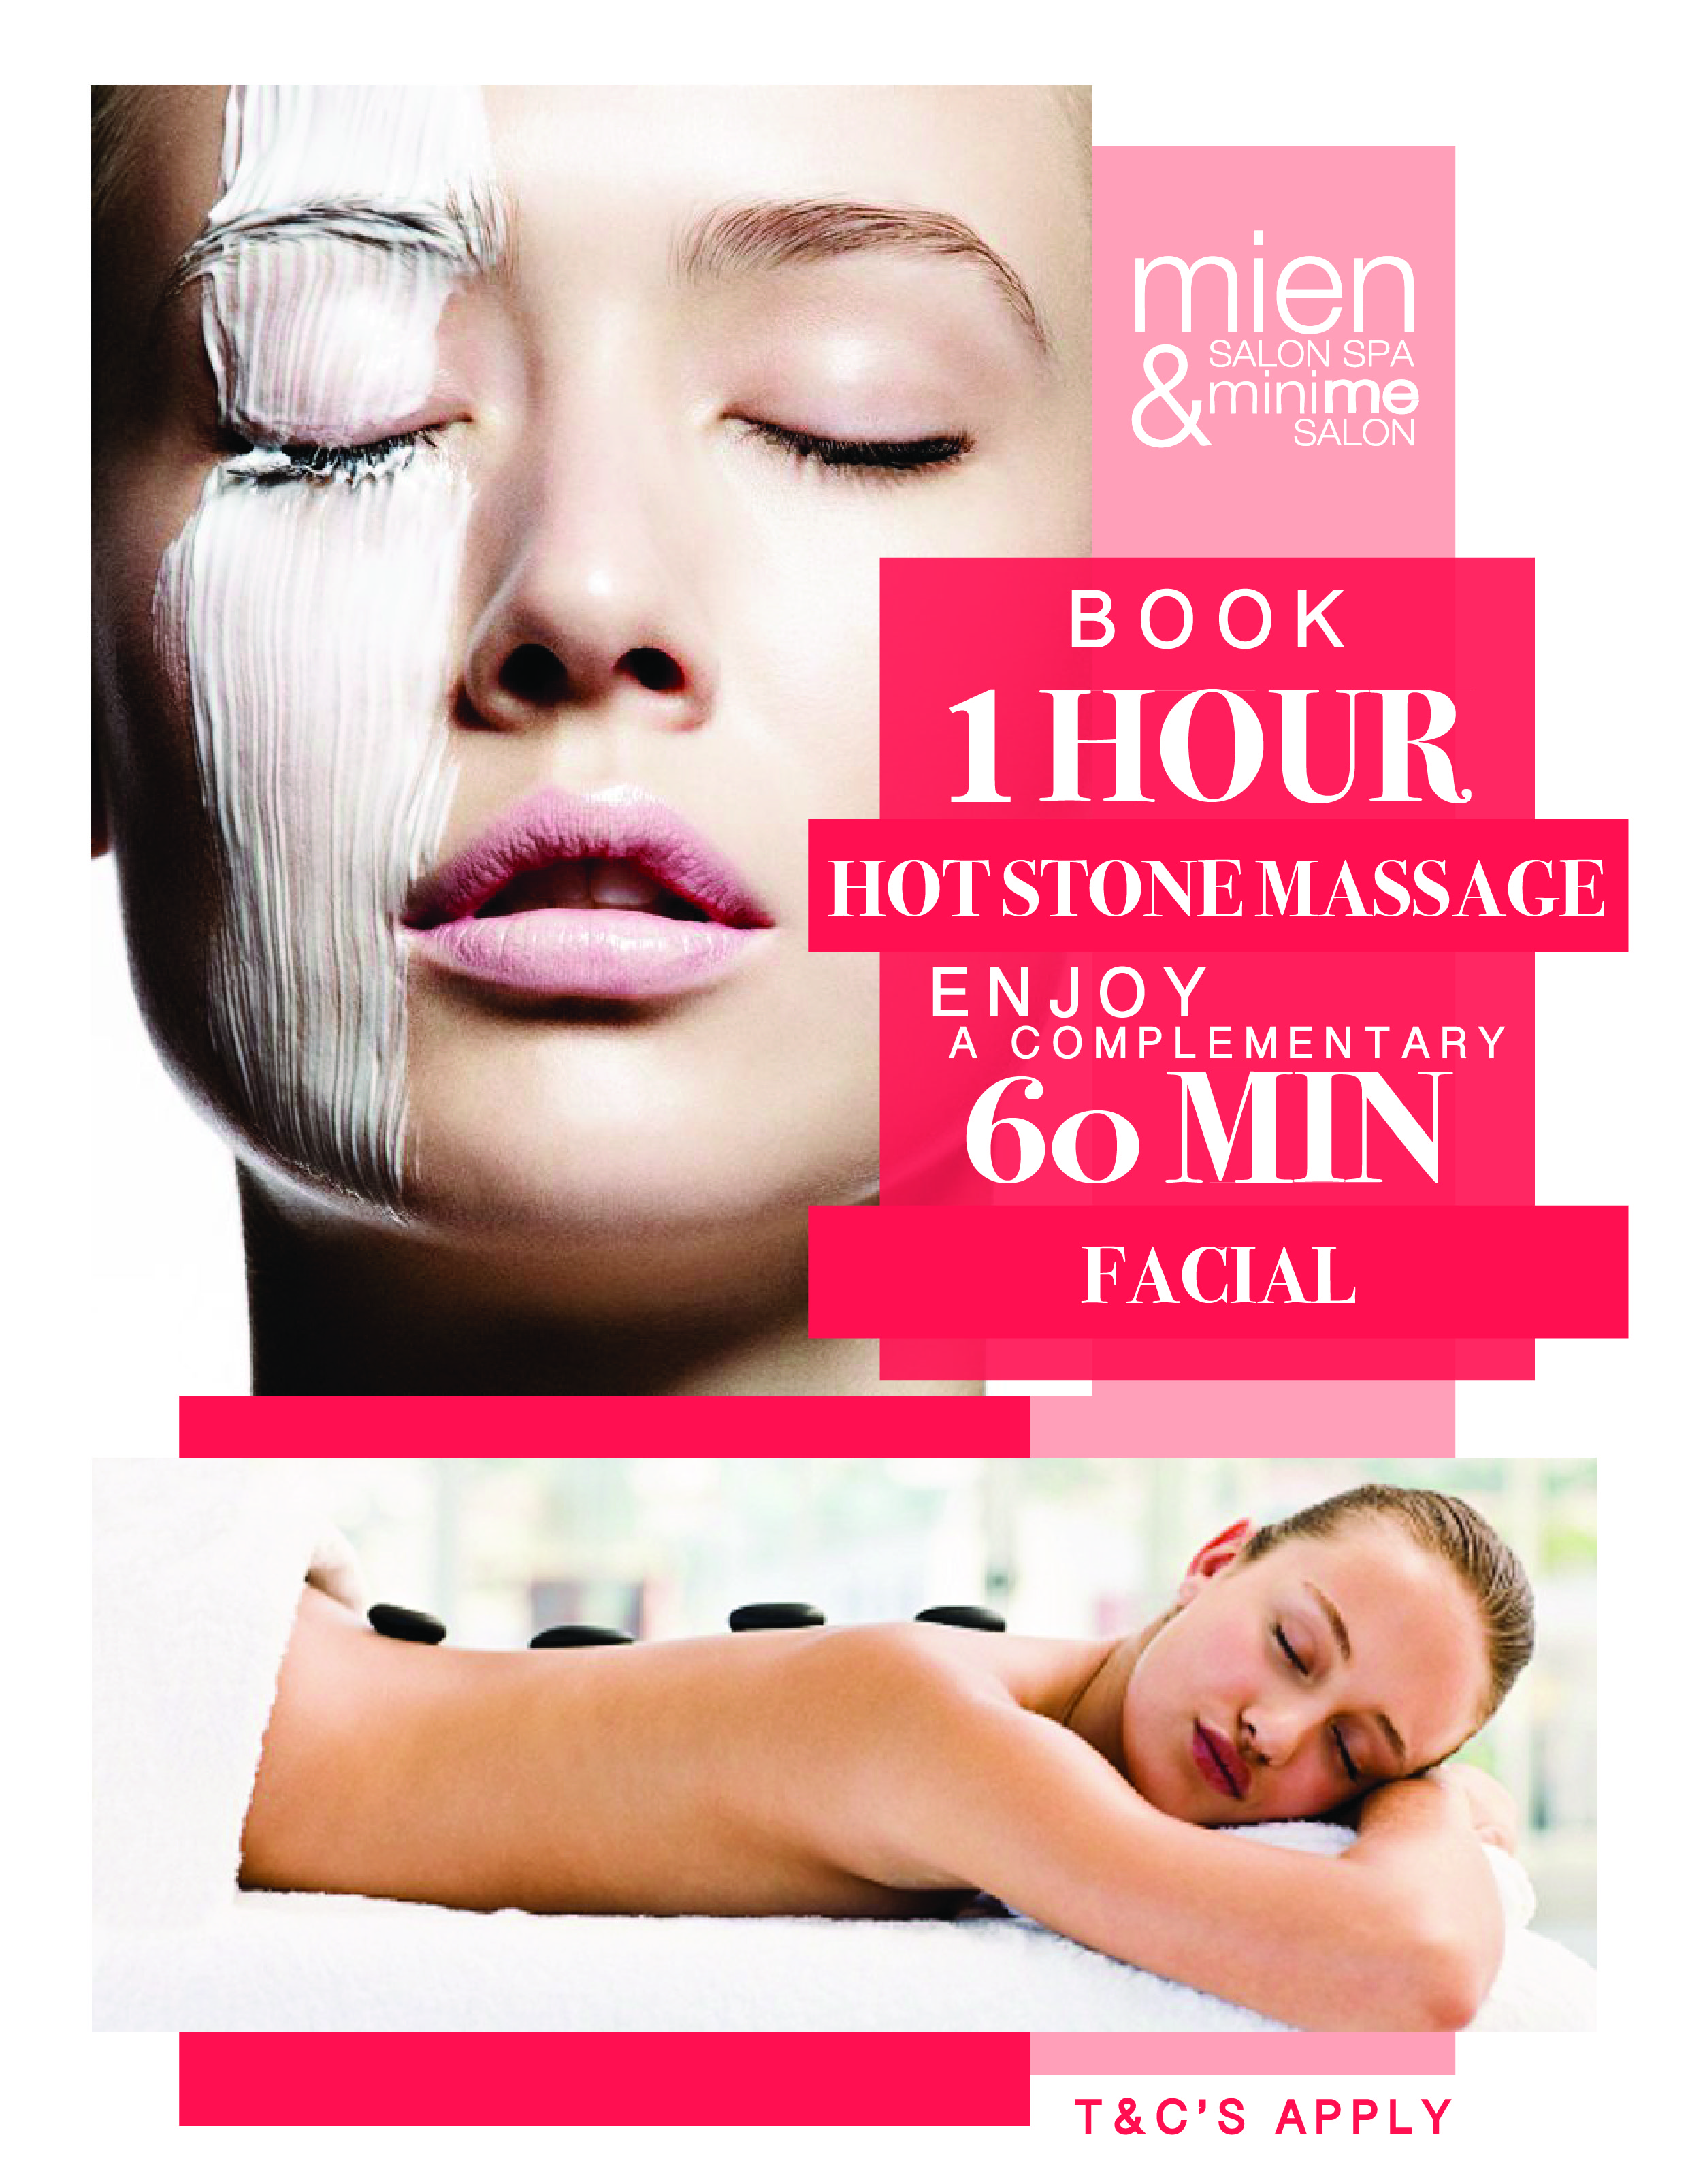 - Winter is here! And what better way to warm up with a hot stone massage. Book a 60min facial and receivea complimentary 30min hot stone back treatment PROMO AVAILABLE FROM TODAY TILL 21ST JULYT&C'S BOOK NOW OR CALL 9482 9199